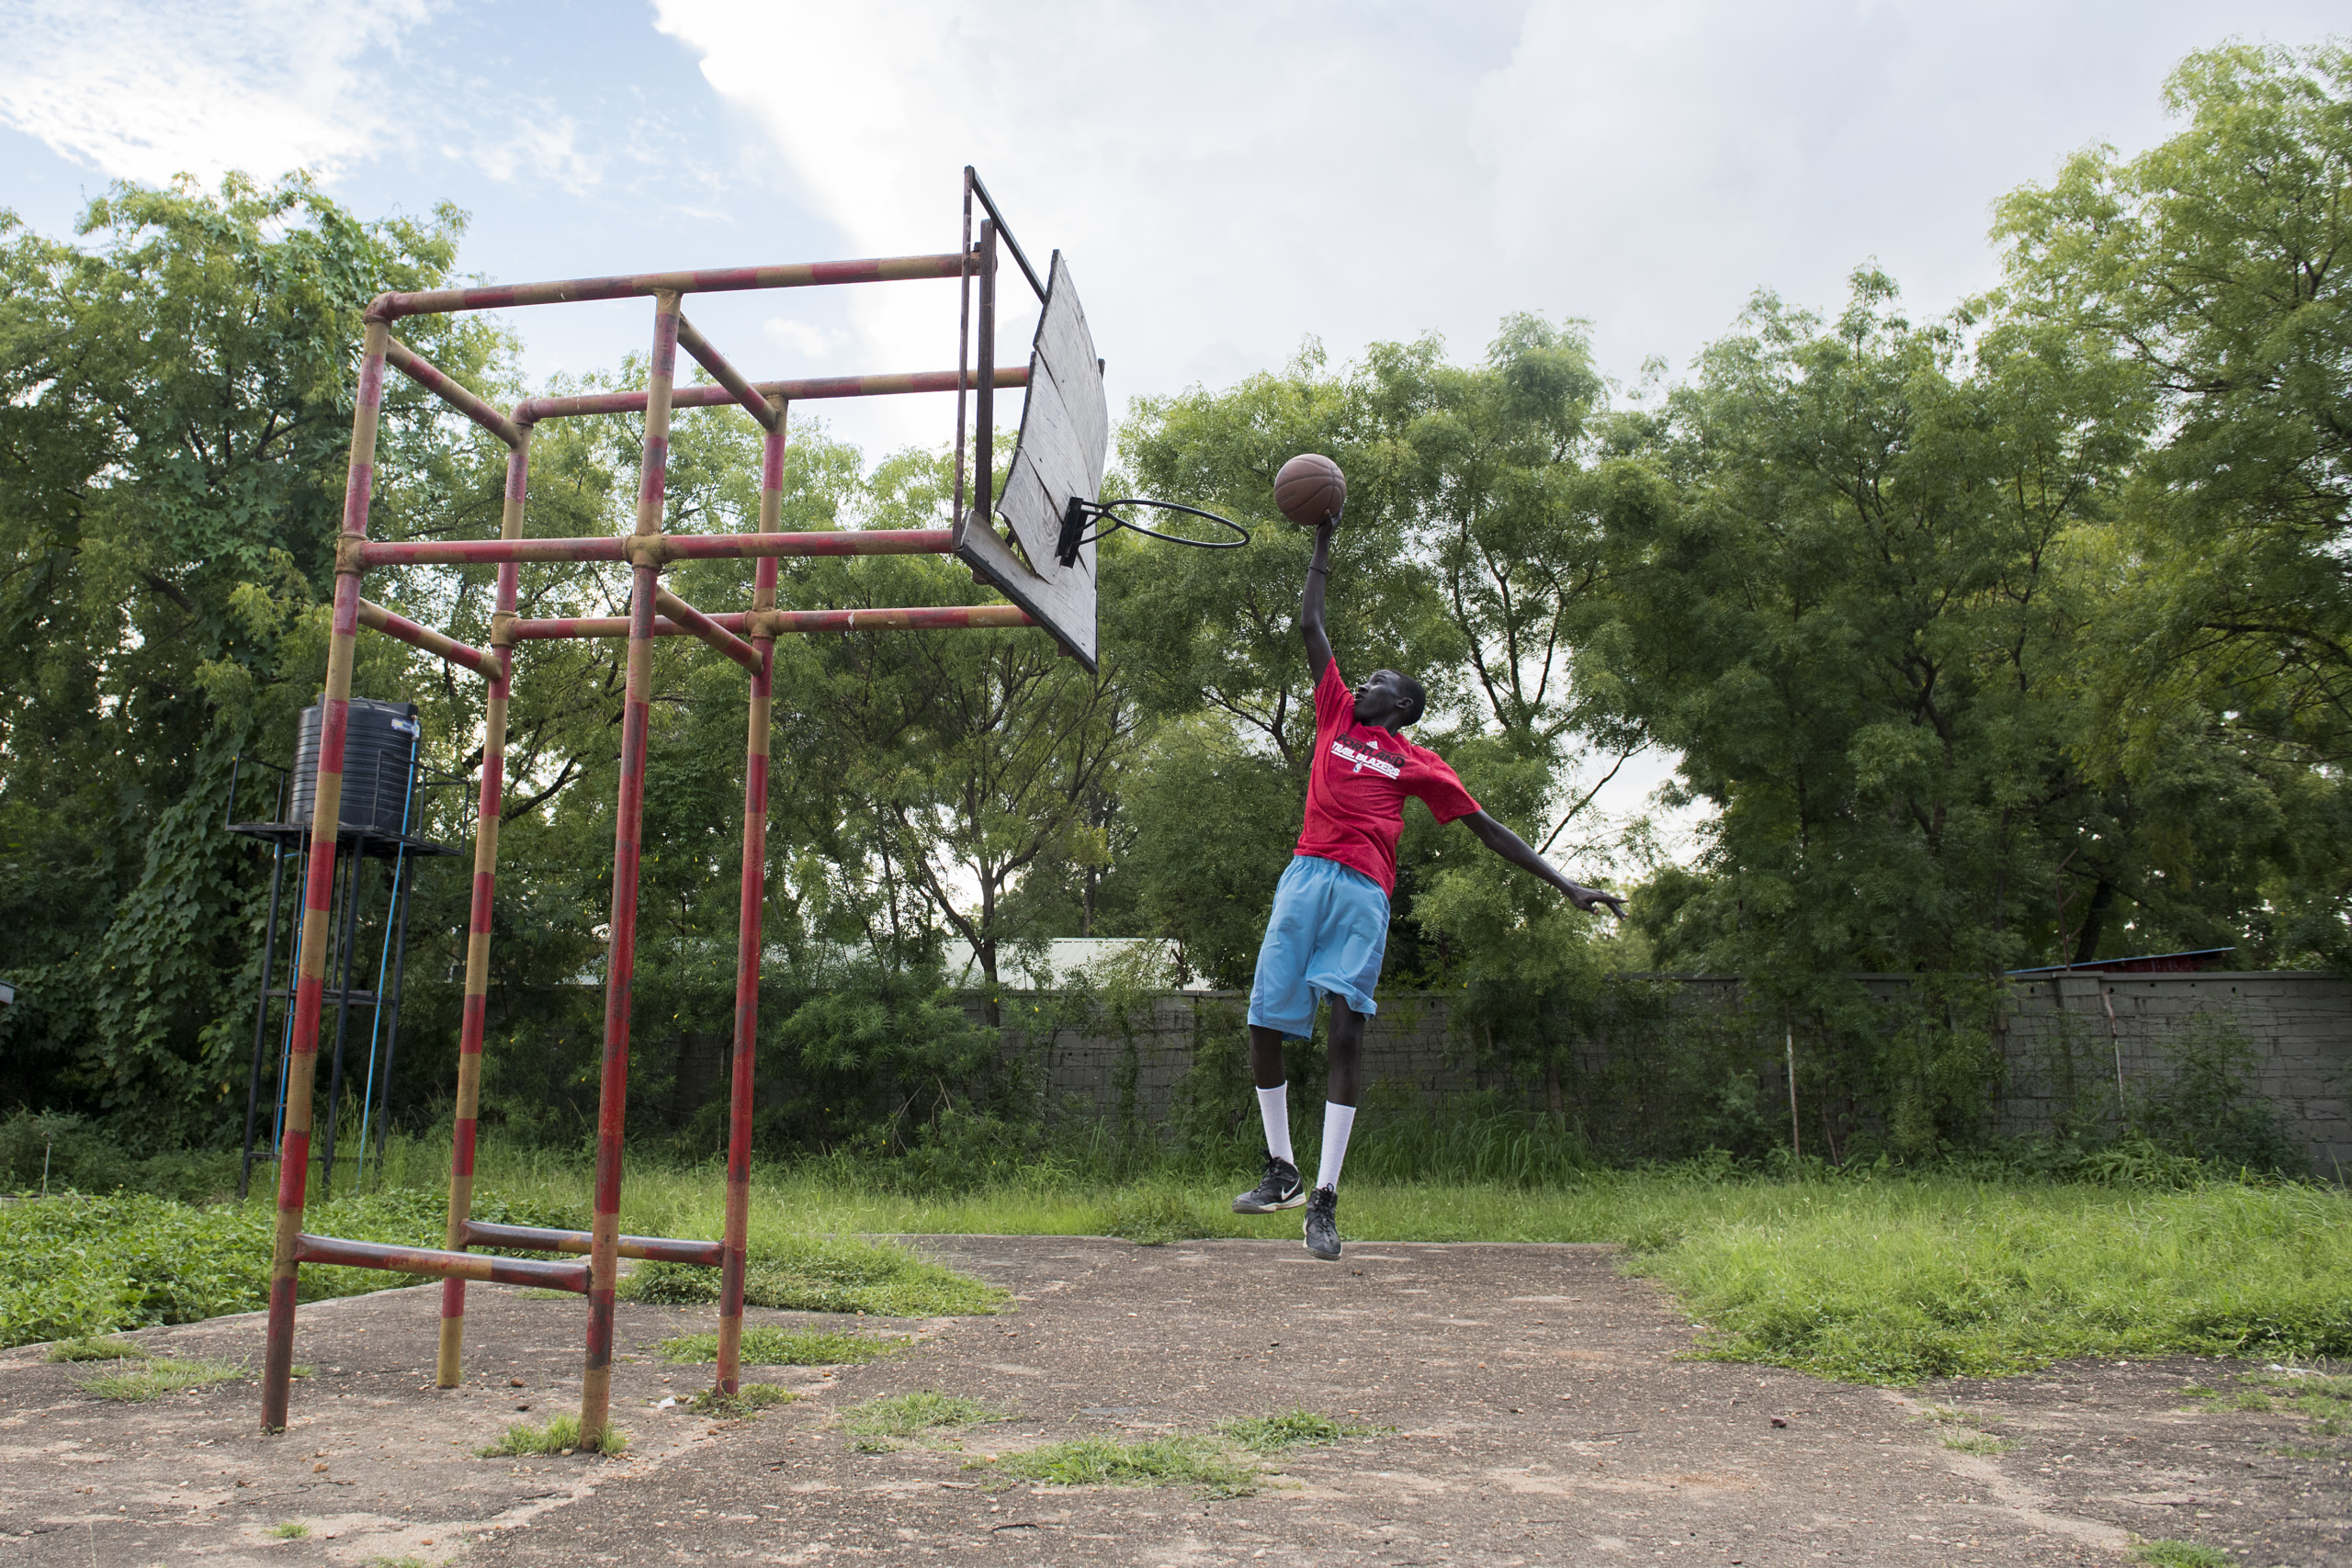 Juba, South Sudan. Young Nuer refugee playing basketball.  The International Basketball Foundation (IBF) was founded in 2008 by FIBA. This Foundation is the social, educational and legacy branch of FIBA ​​to address the role of sport and basketball especially in society. The role of the Foundation is to preserve and promote the values ​​of basketball and its cultural heritage.